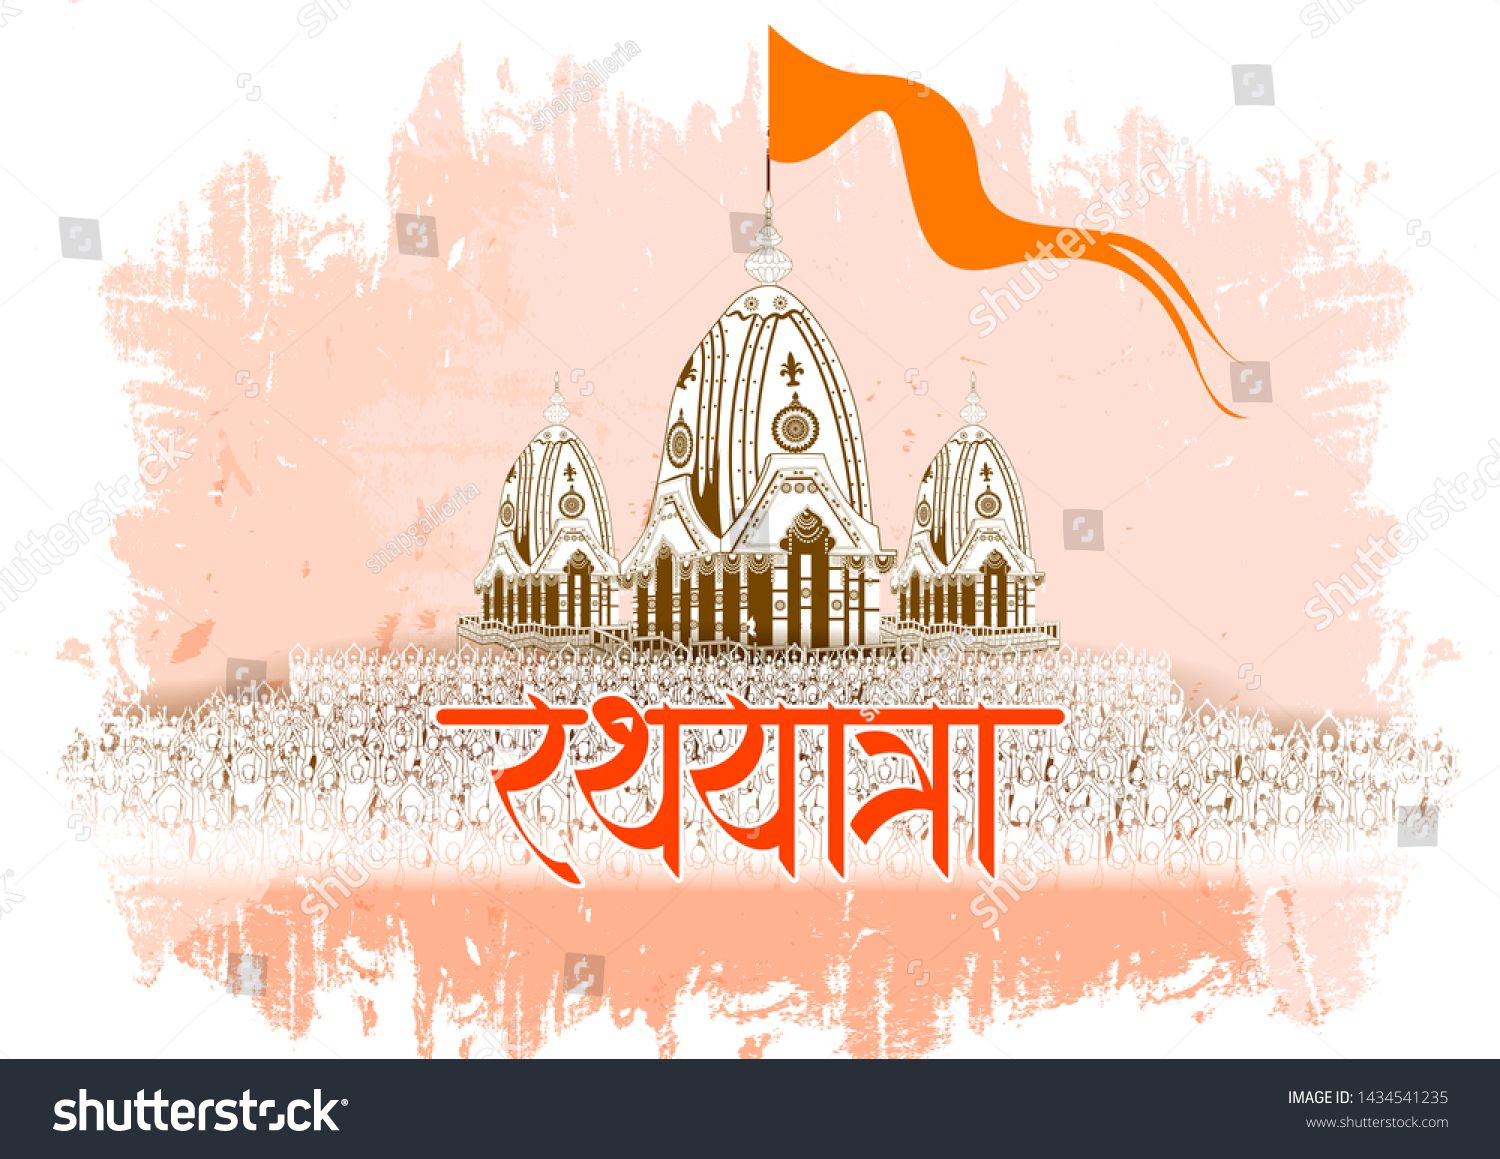 Easy To Edit Vector Illustration Of Rath Yatra Lord Jagannath